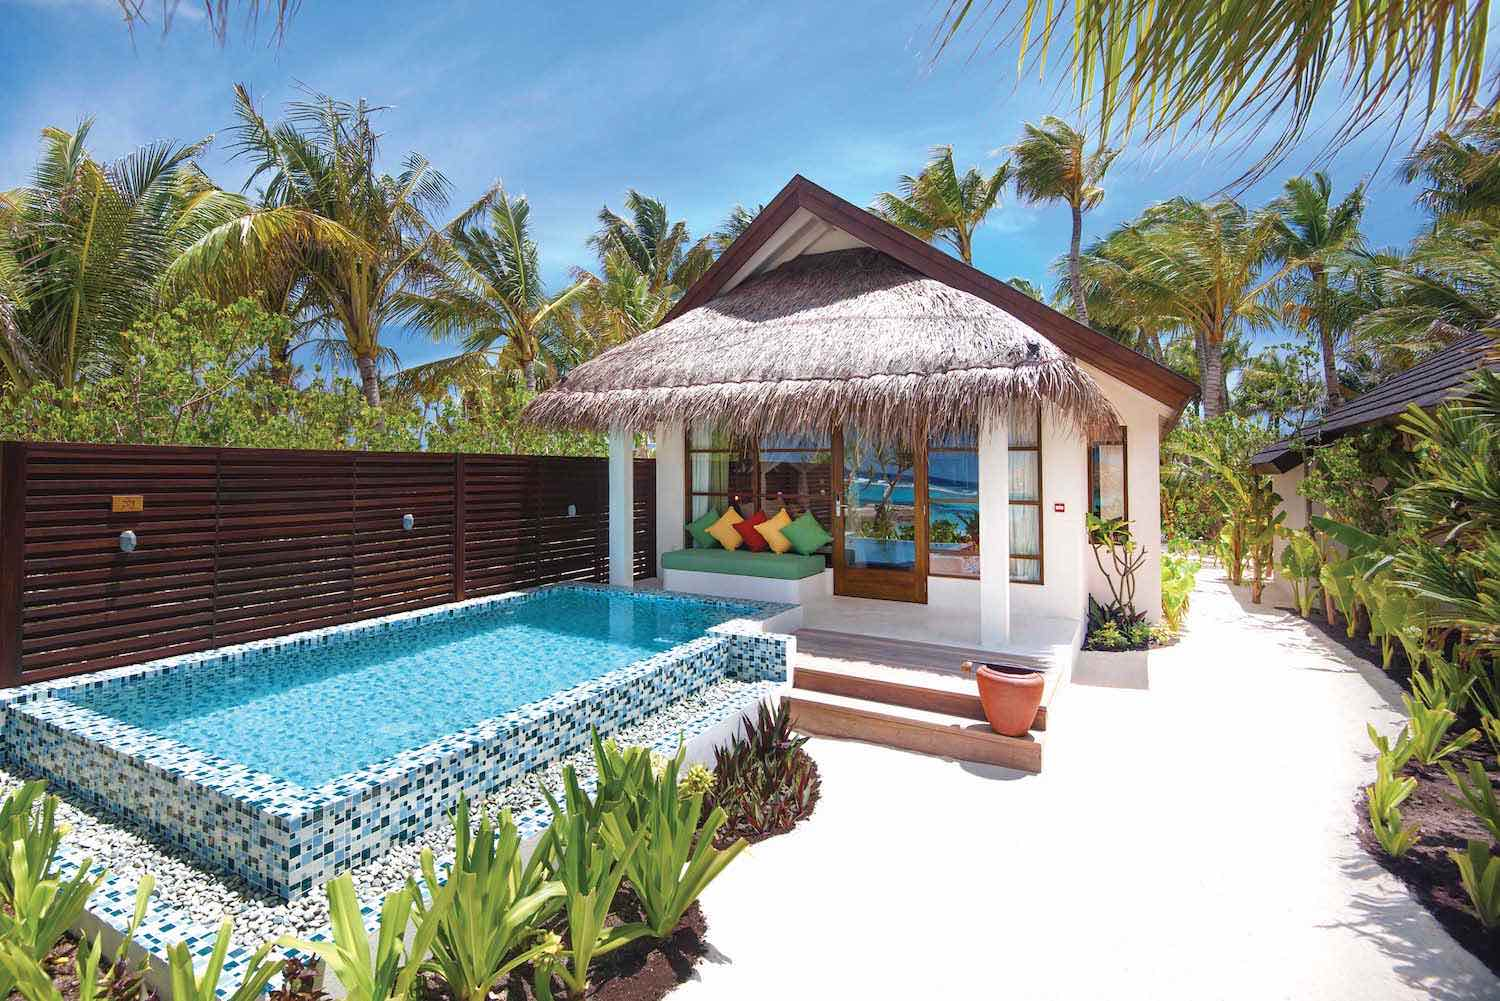 maldives-oblu-select-at-sangeli-deluxe-beach-villa-with-pool-6-holiday-honeymoon-vacation-invite-to-paradise.jpg